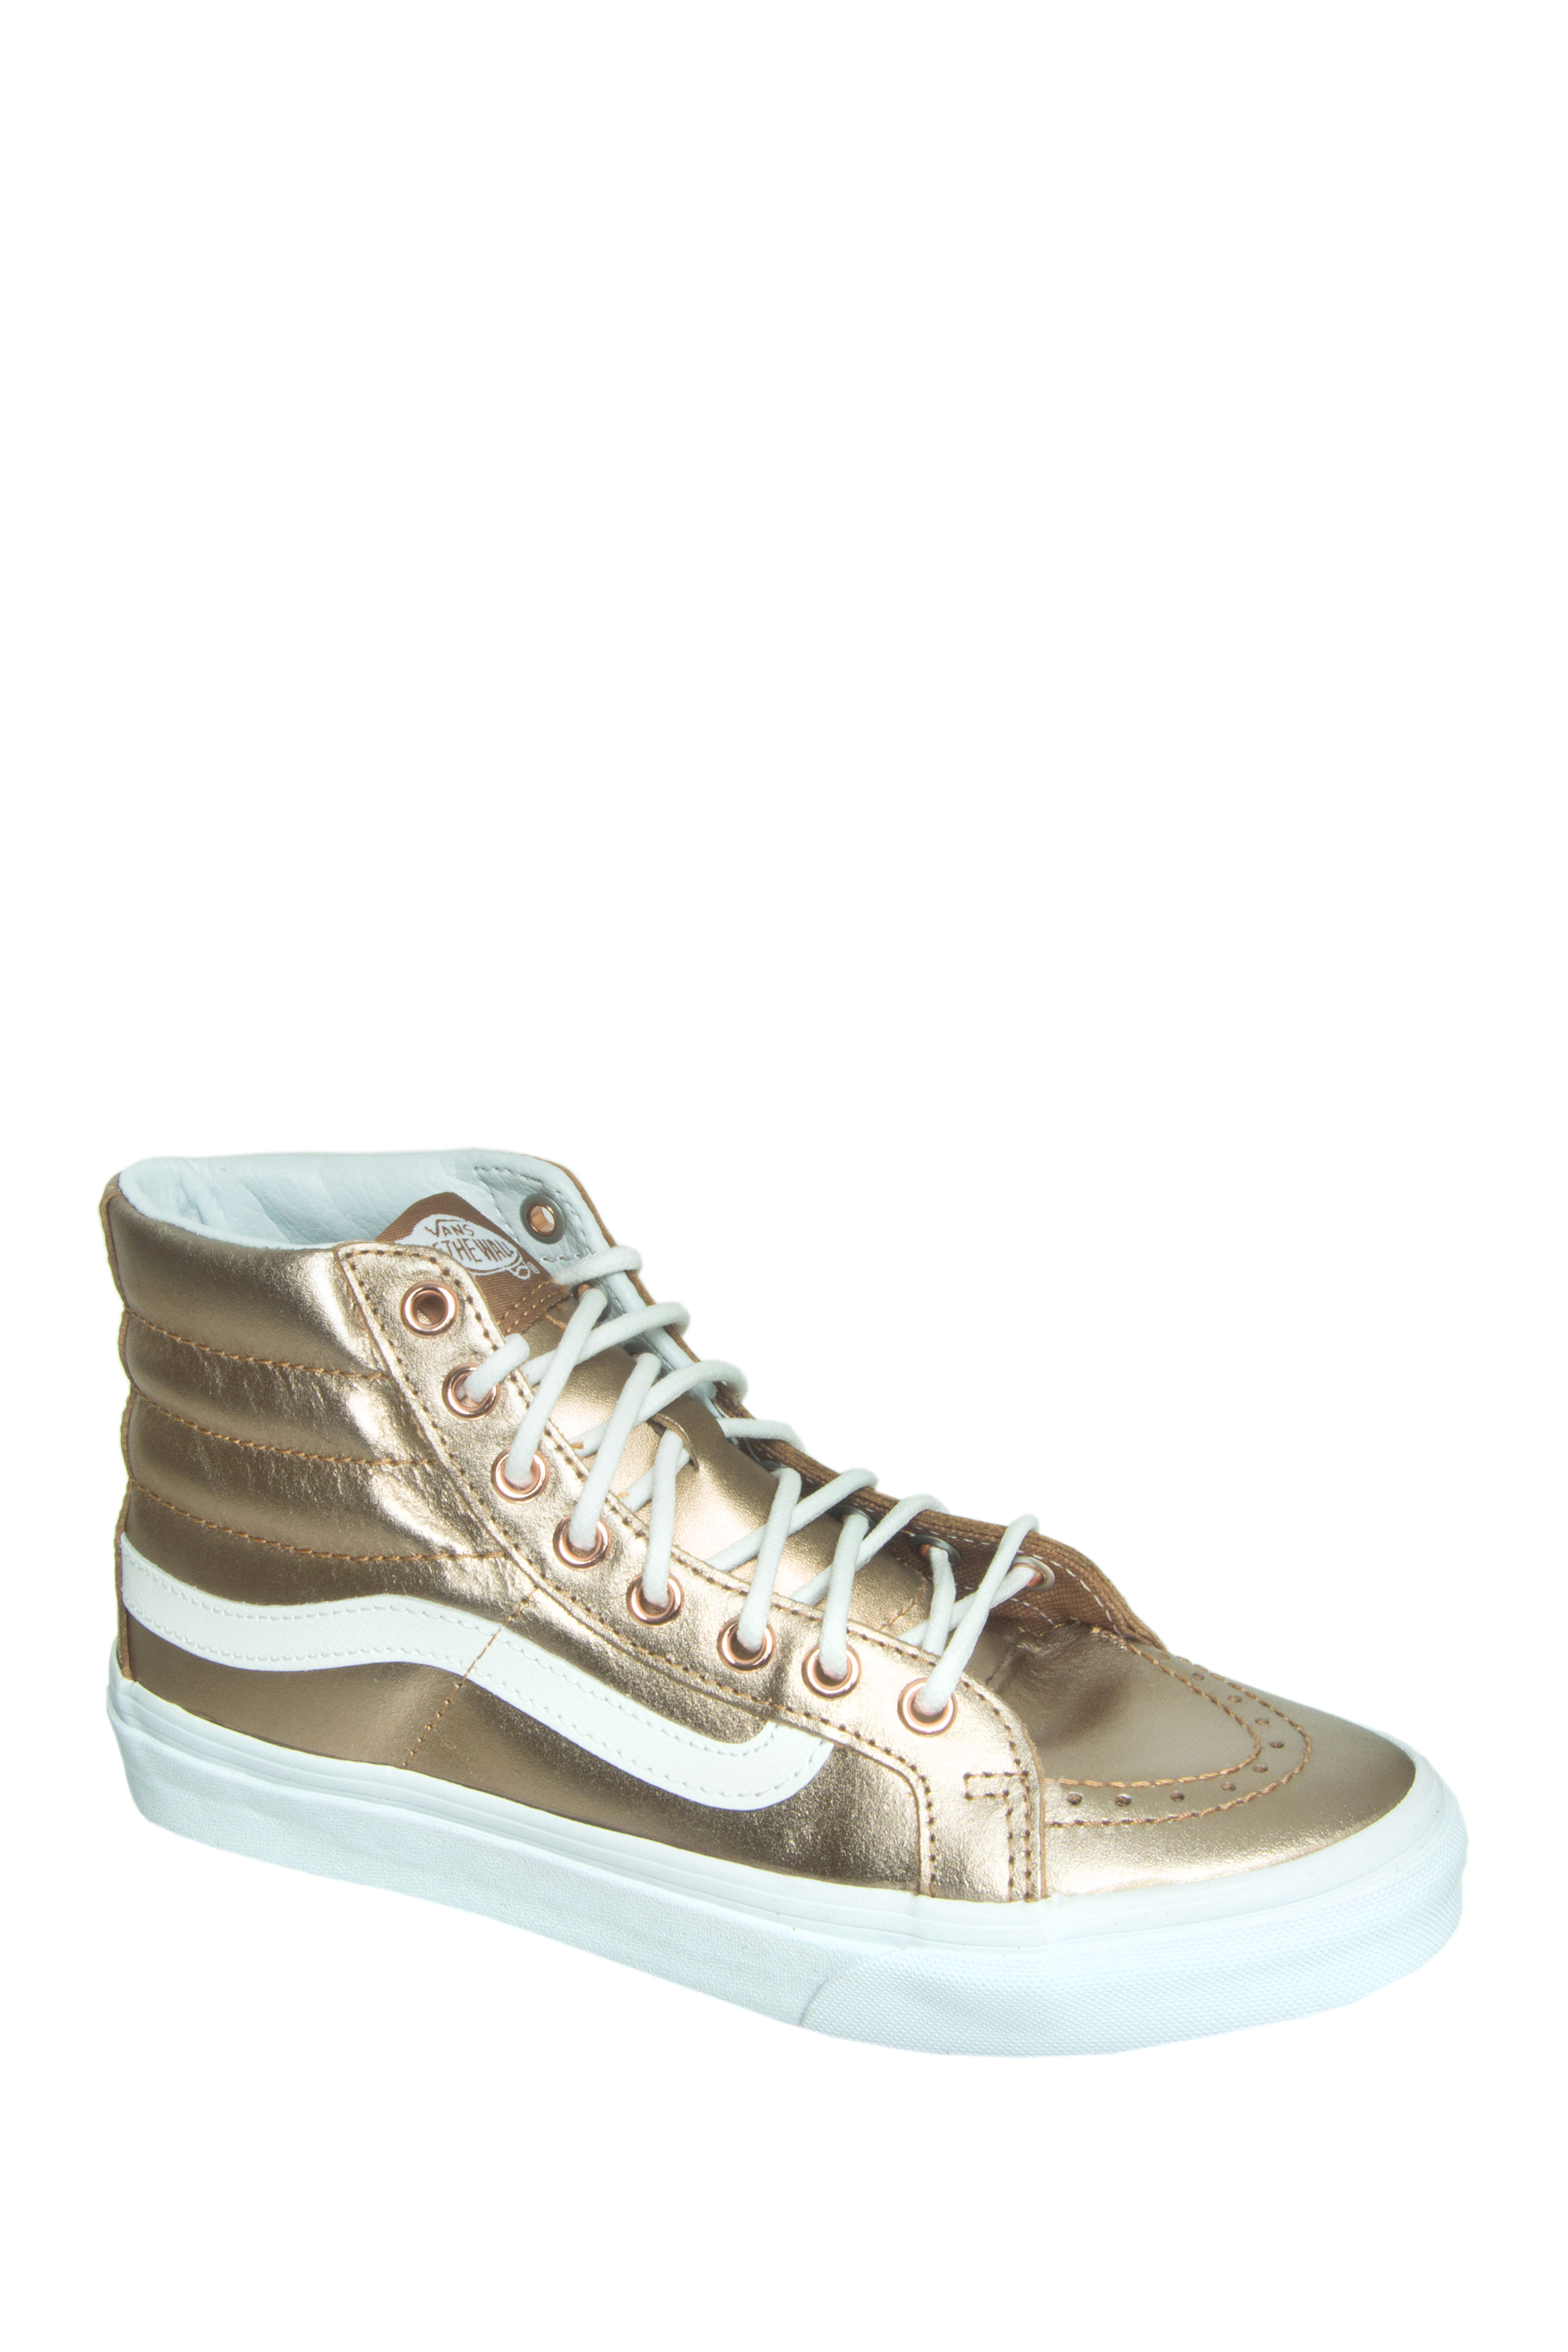 Vans Unisex Sk8 Hi-Top Slim Metallic Sneakers - Rose Gold